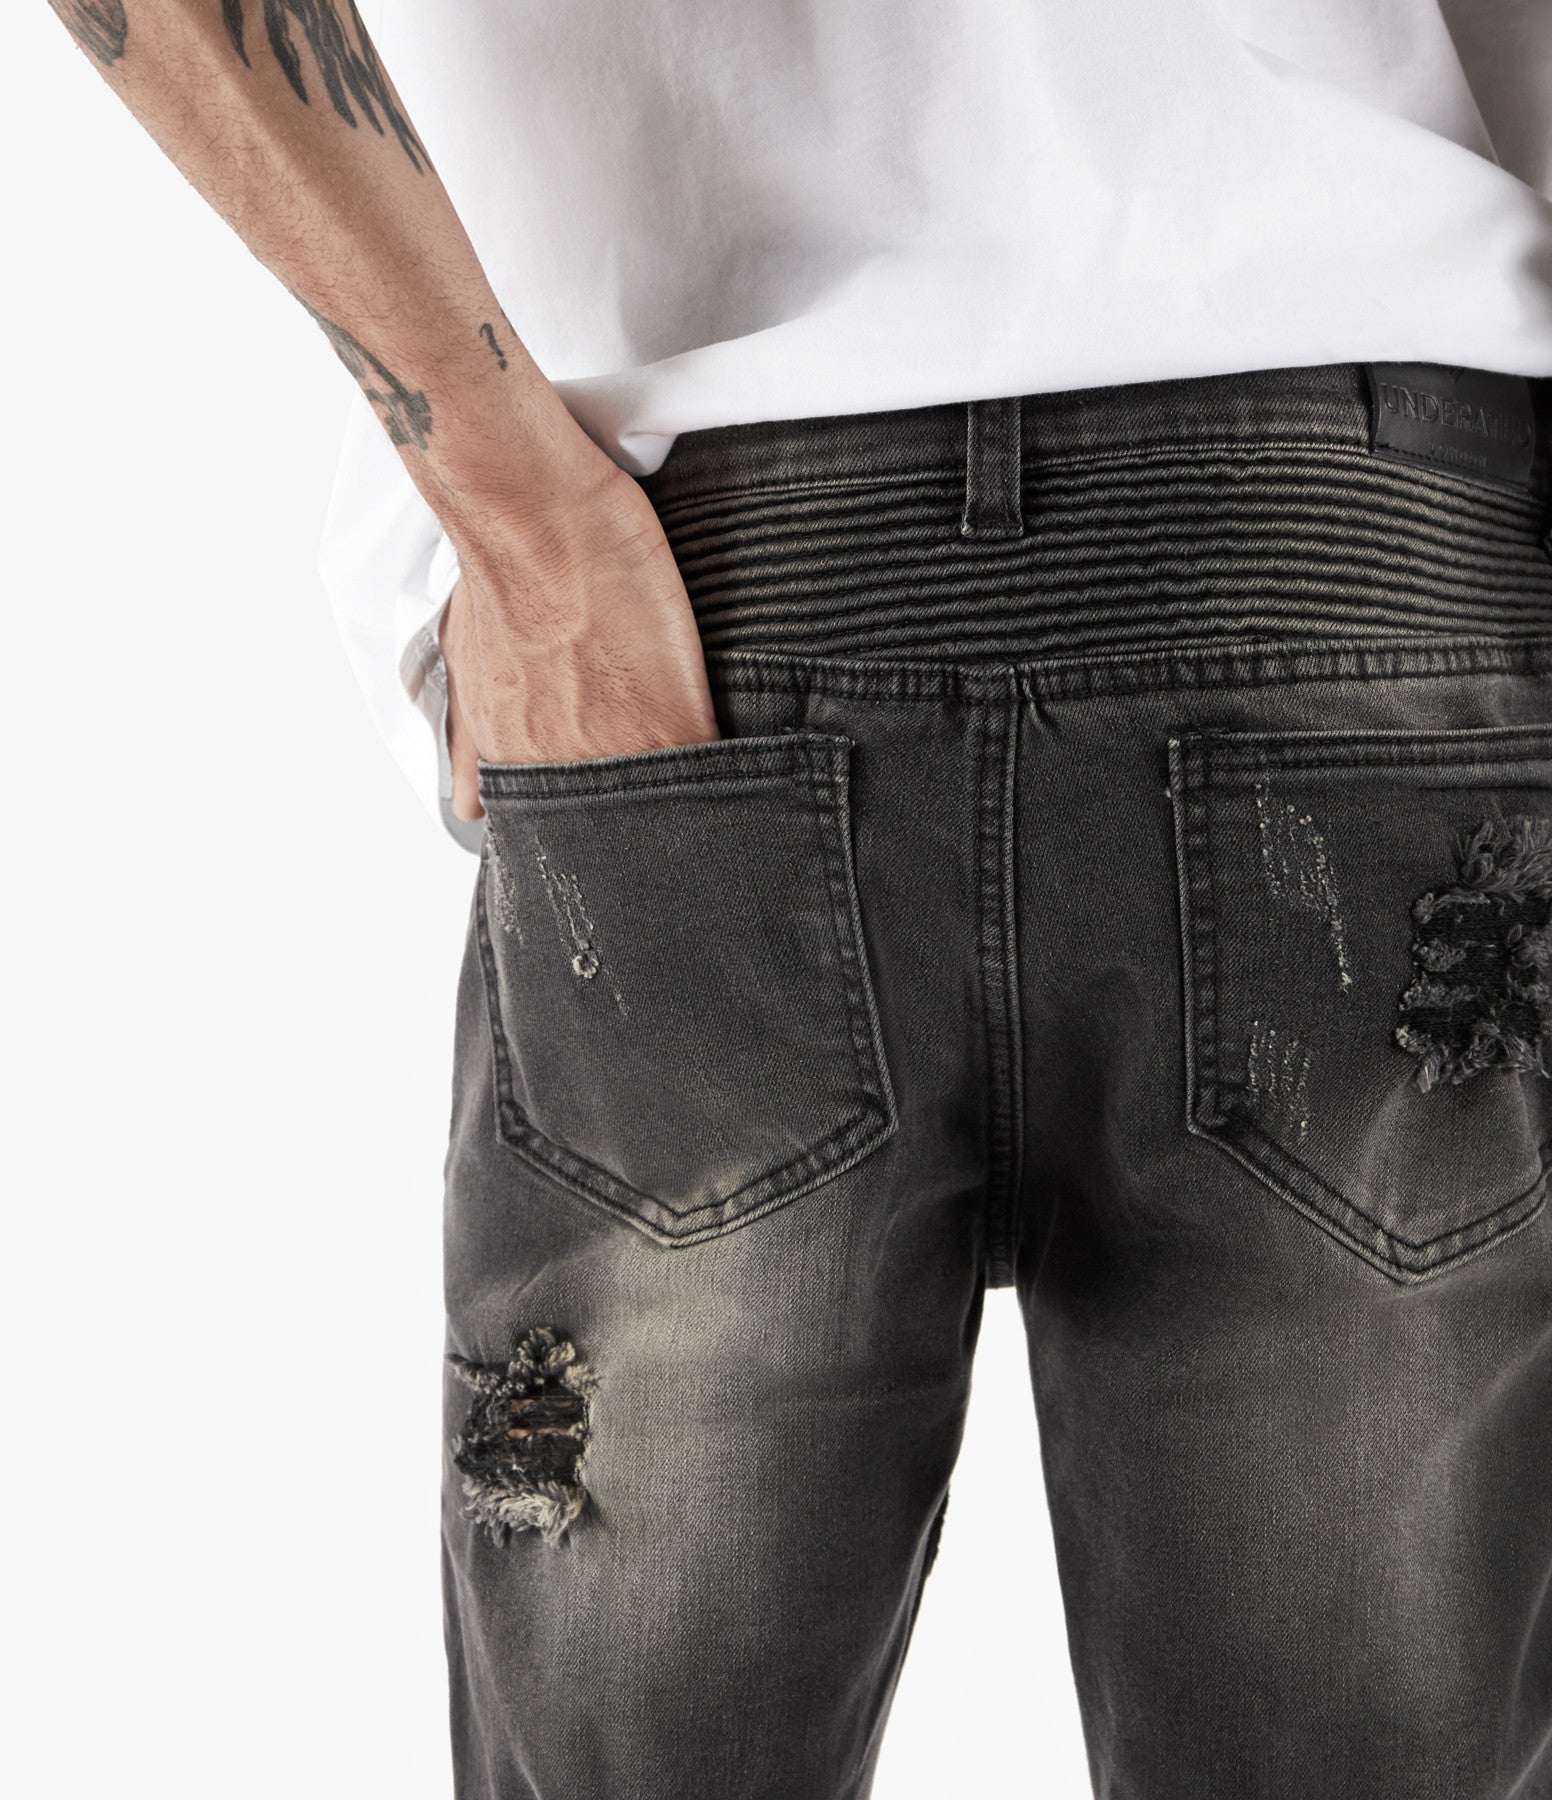 JN152 Distressed Stone Wash Biker Denim - Black - underated london - underatedco - 8